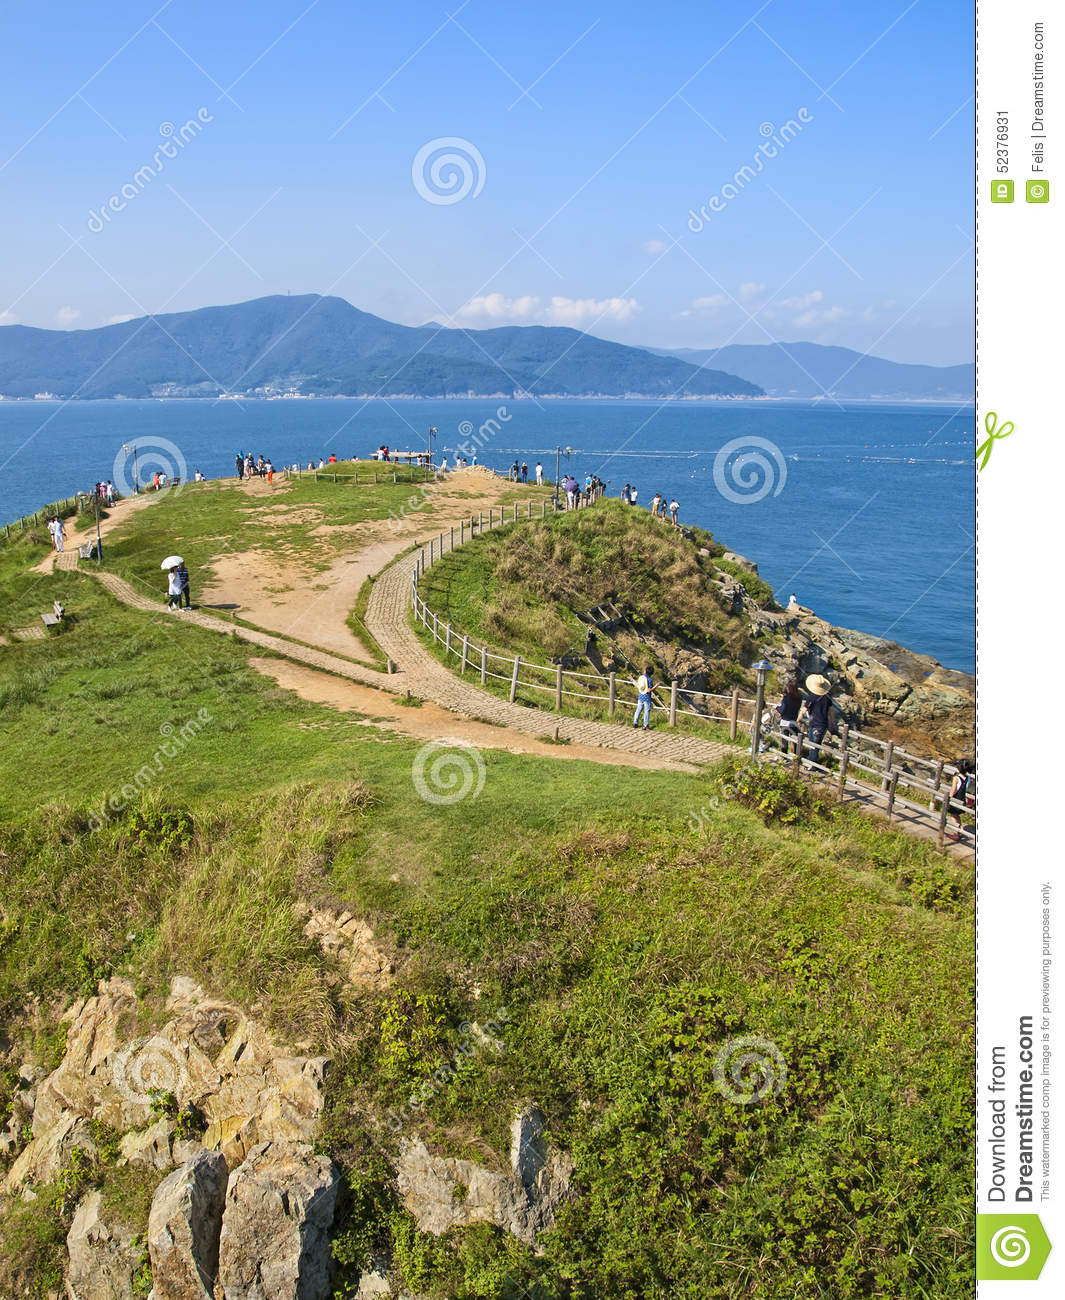 Green Hill By Sea With People Walking Along Paths Stock Photo.